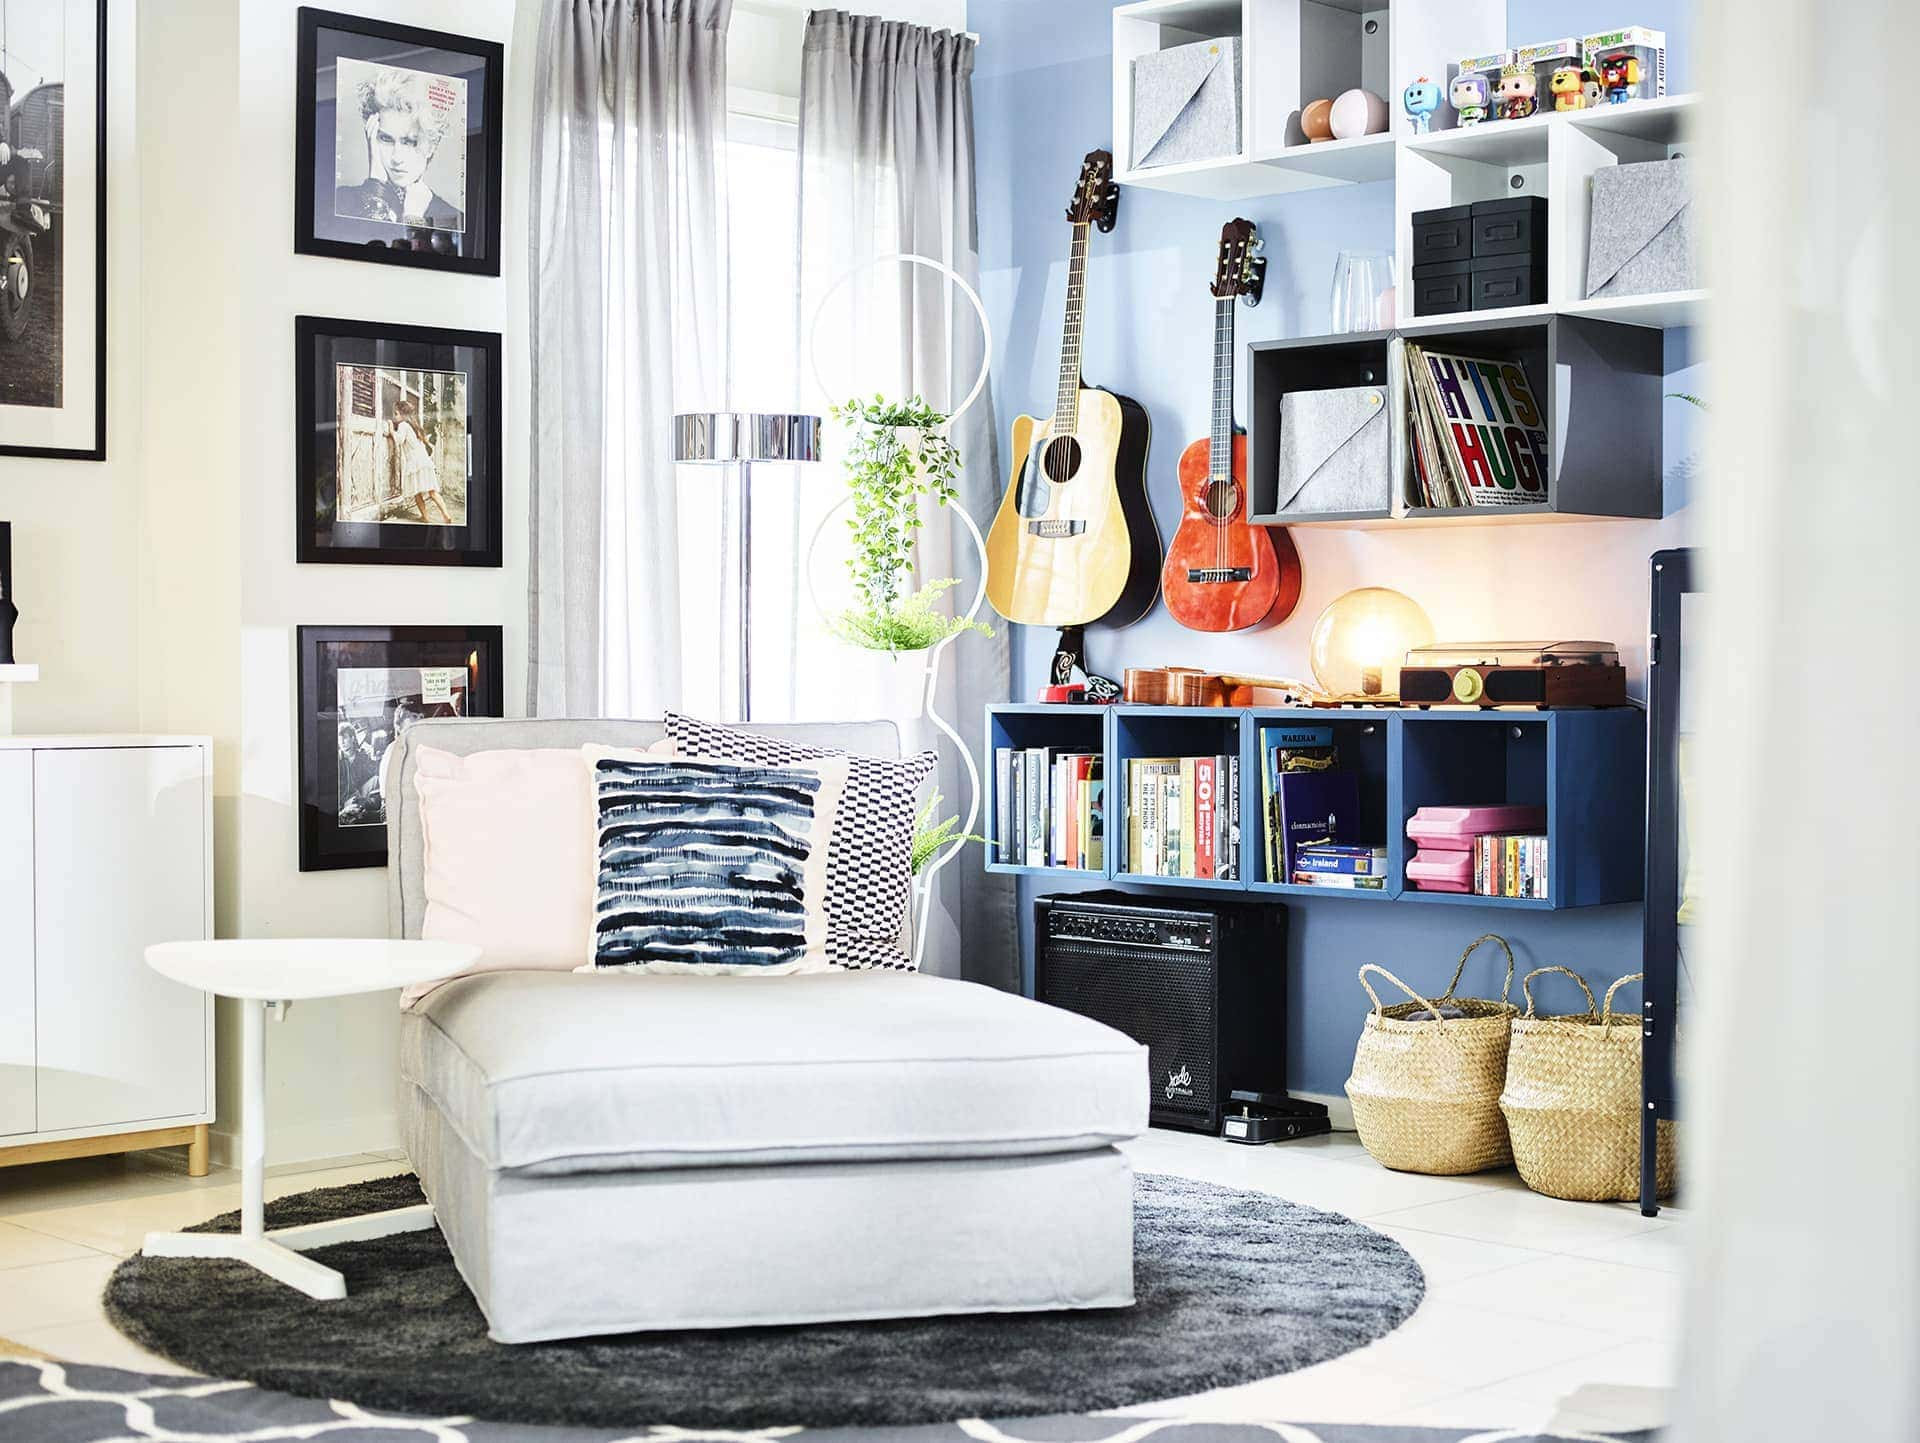 ikea white chaise armchair with white laptop table and blue shelving